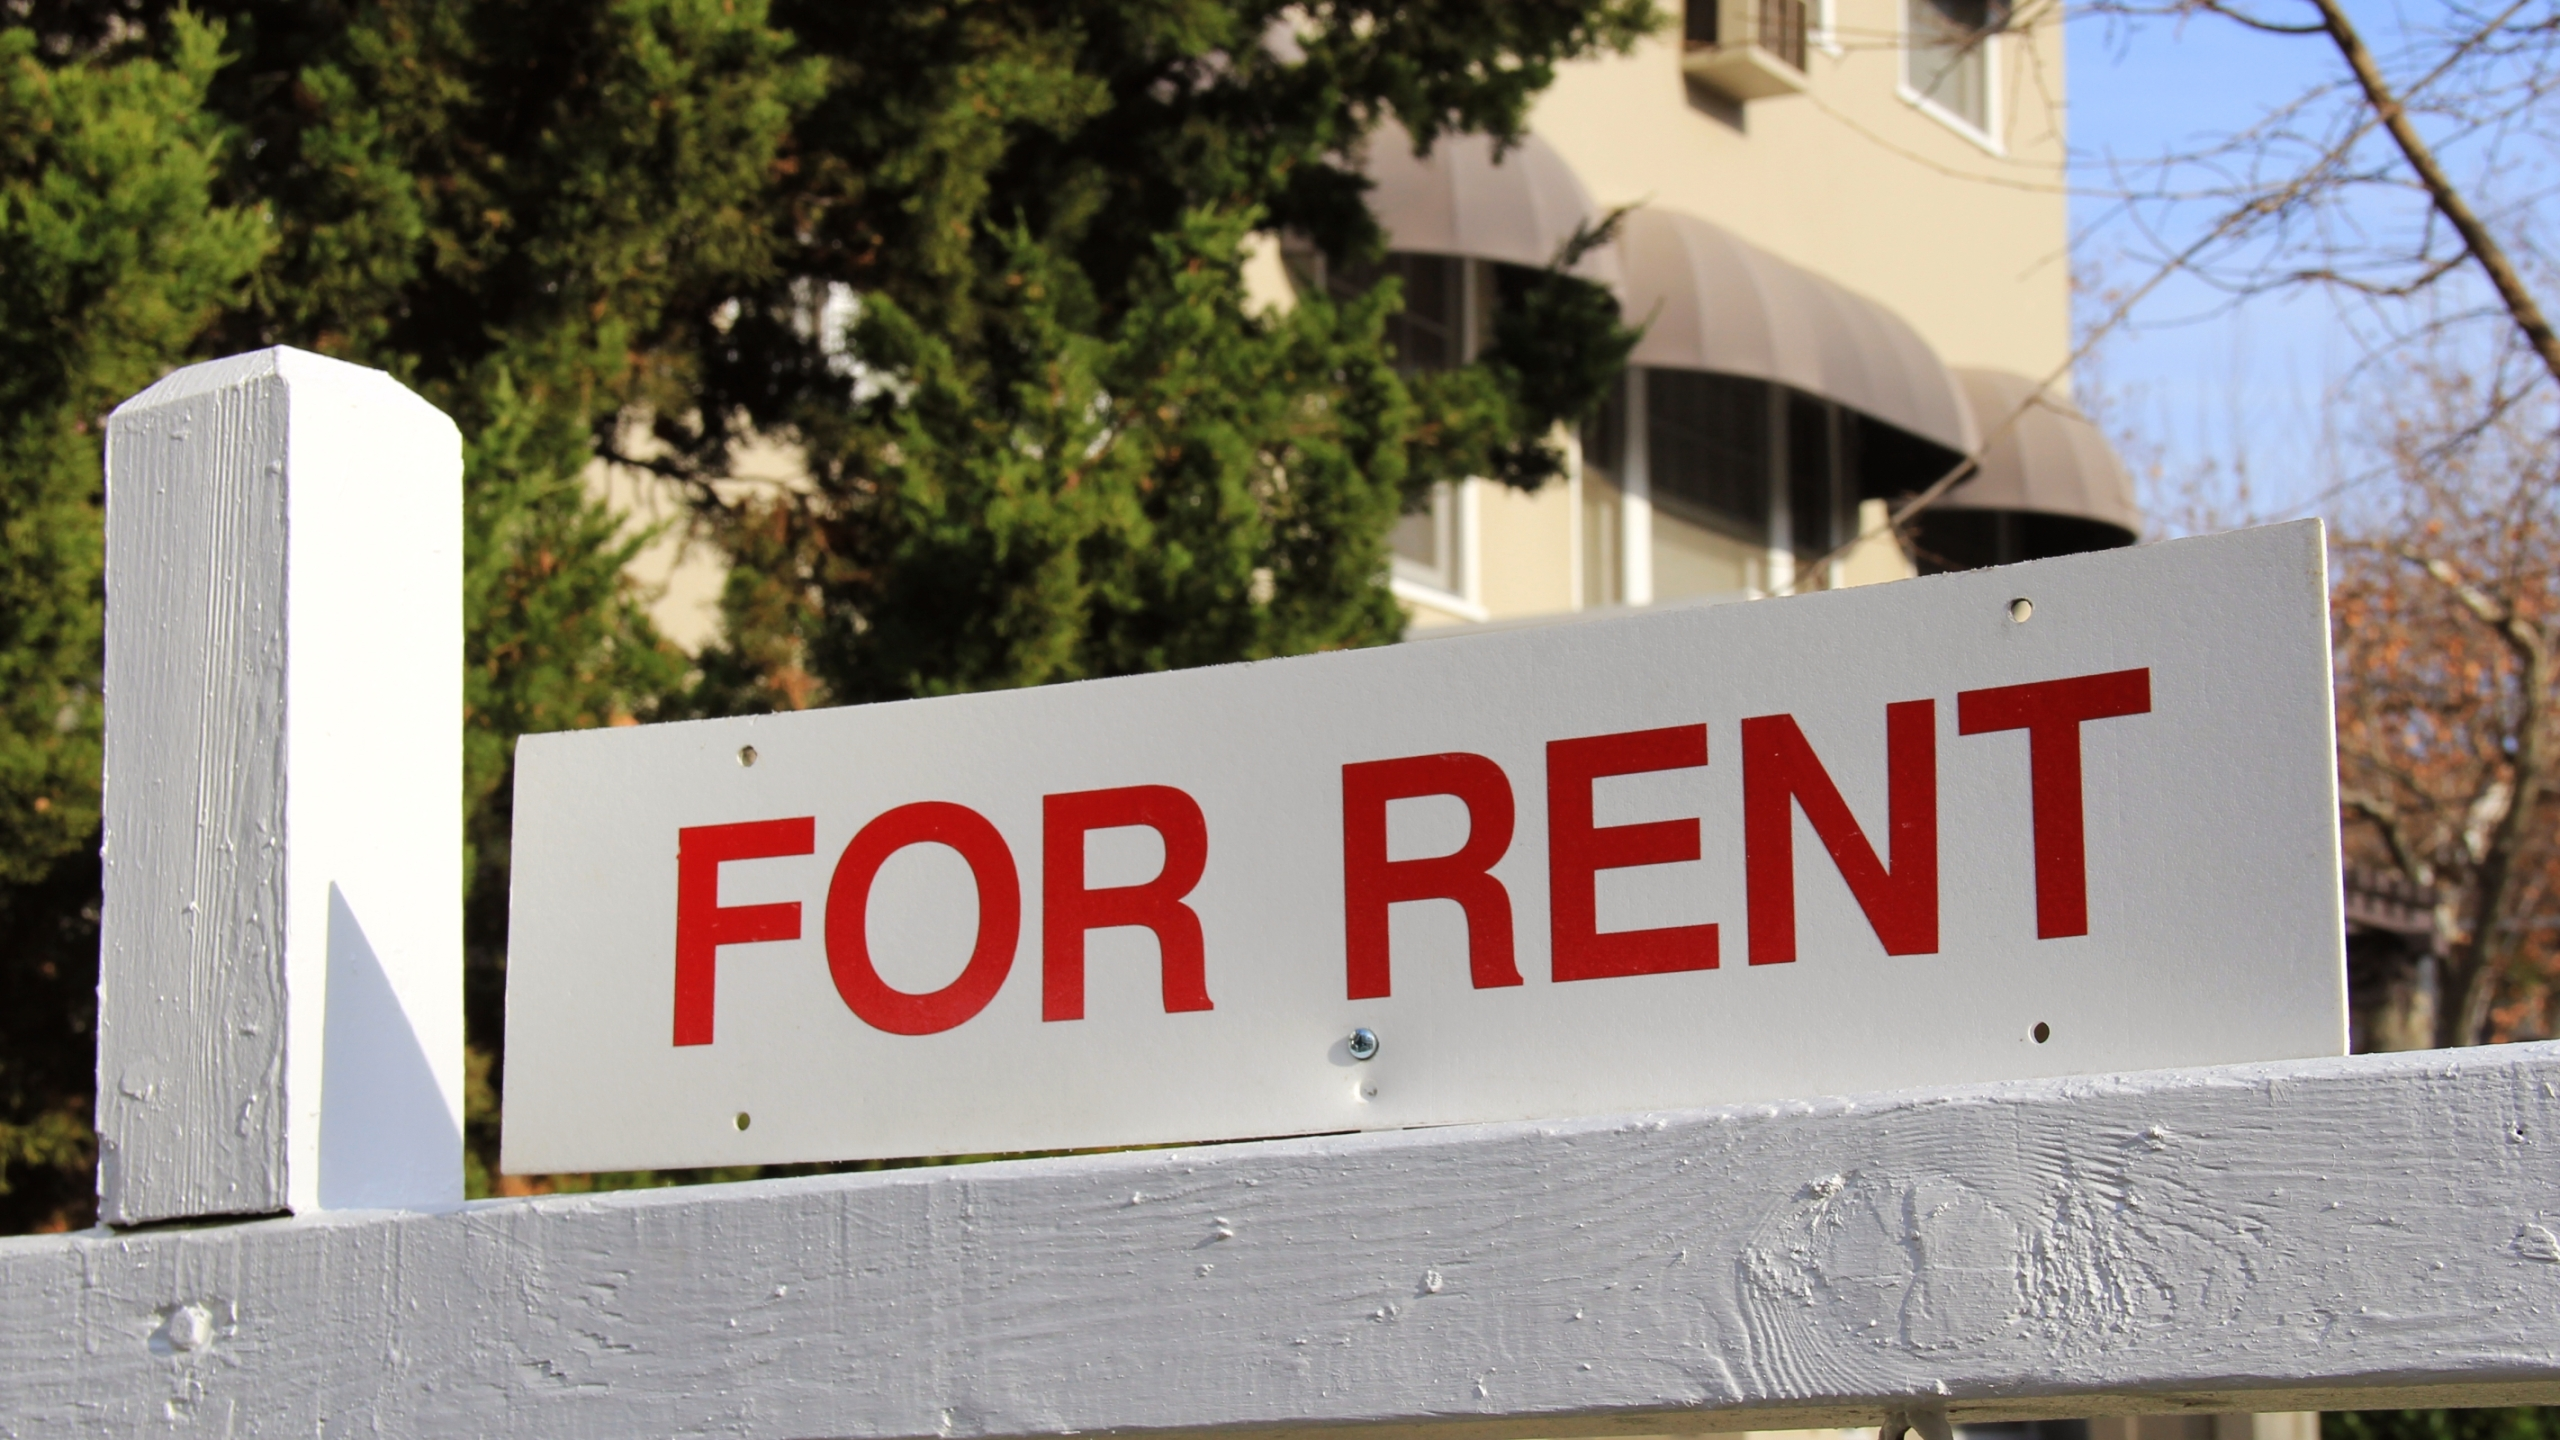 For Rent (Getty Images)